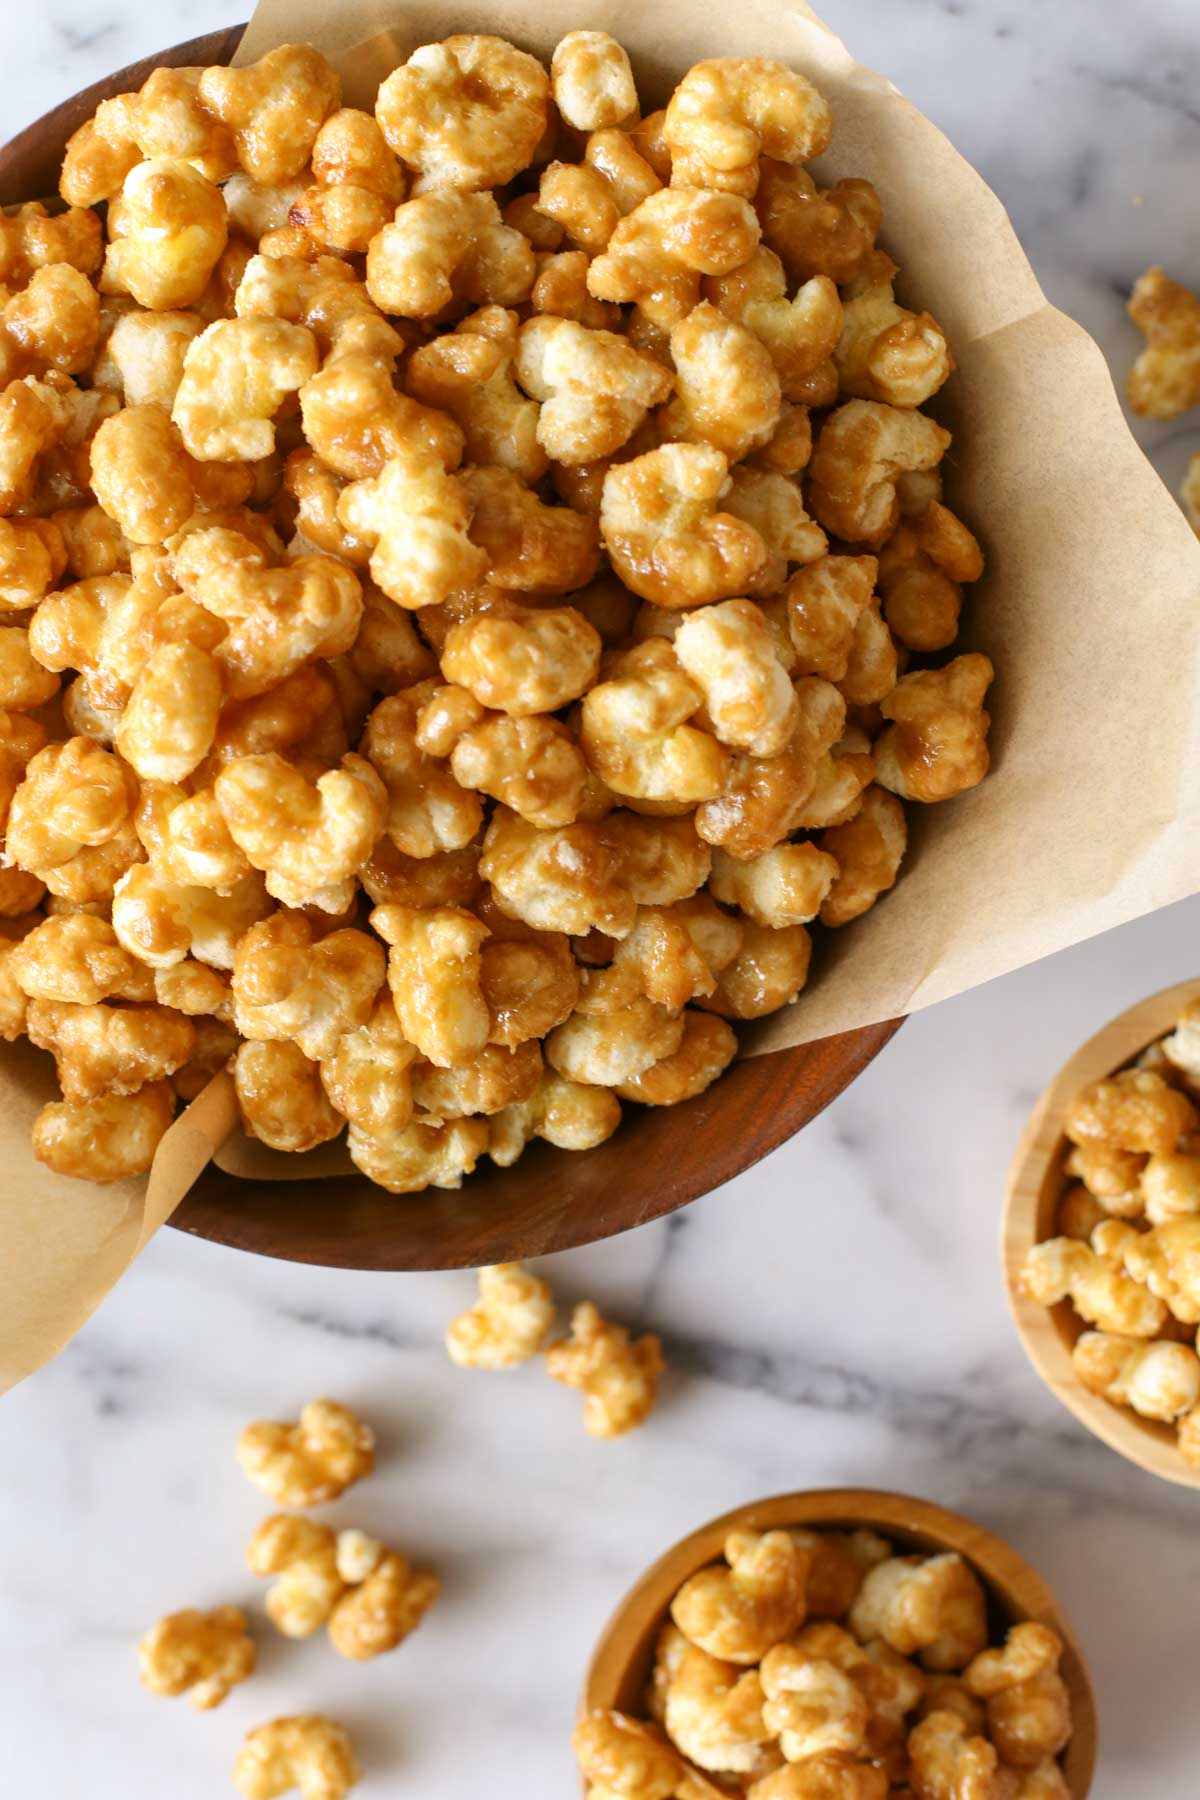 Overhead shot of Caramel Puff Corn in a wood bowl lined with parchment paper, with two small wood bowls of Caramel Puff Corn next to it.